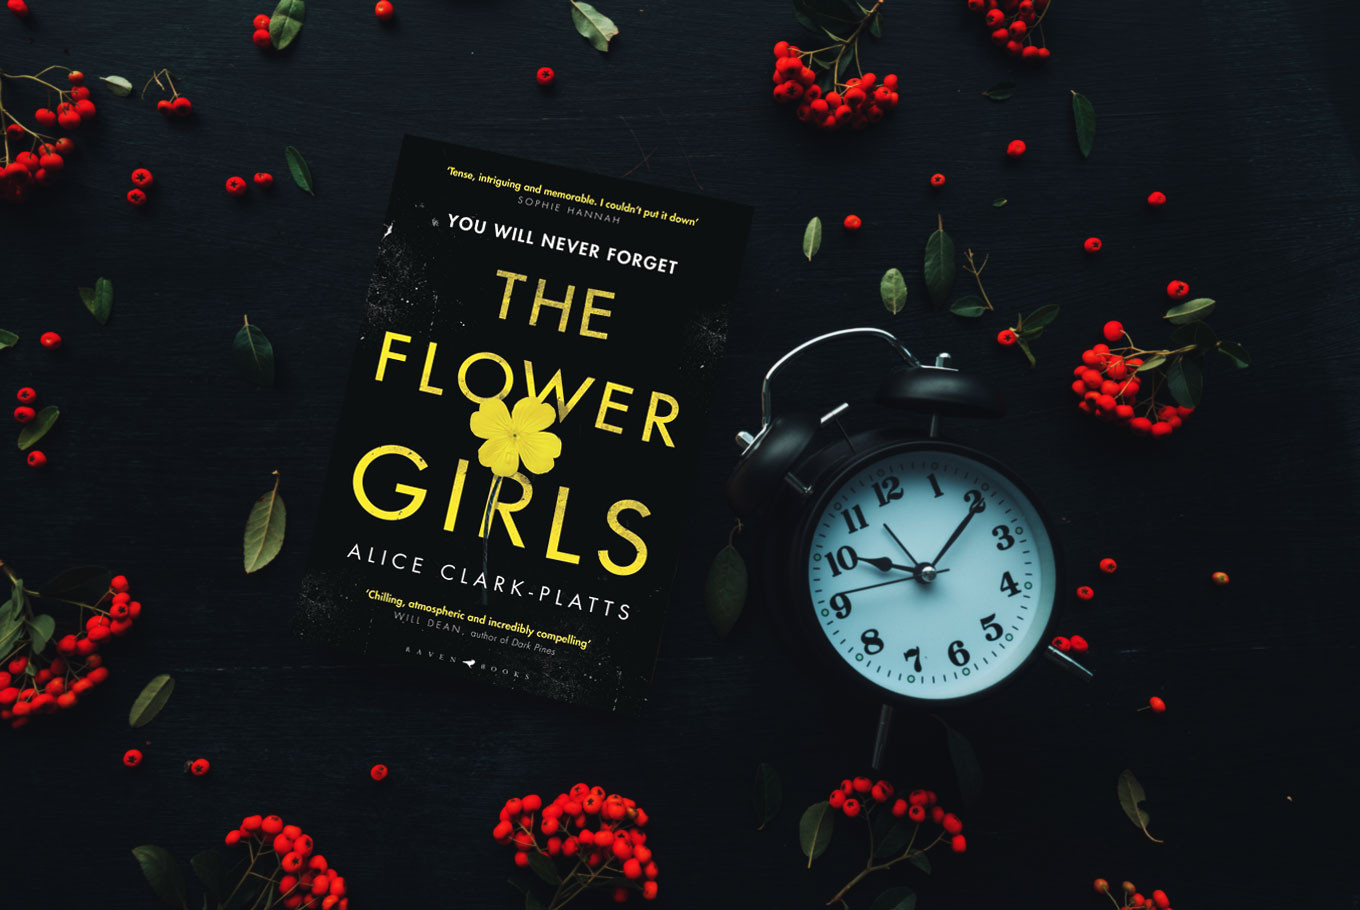 Alice Clark-Platts on 'The Flower Girls' and the beauty of evil